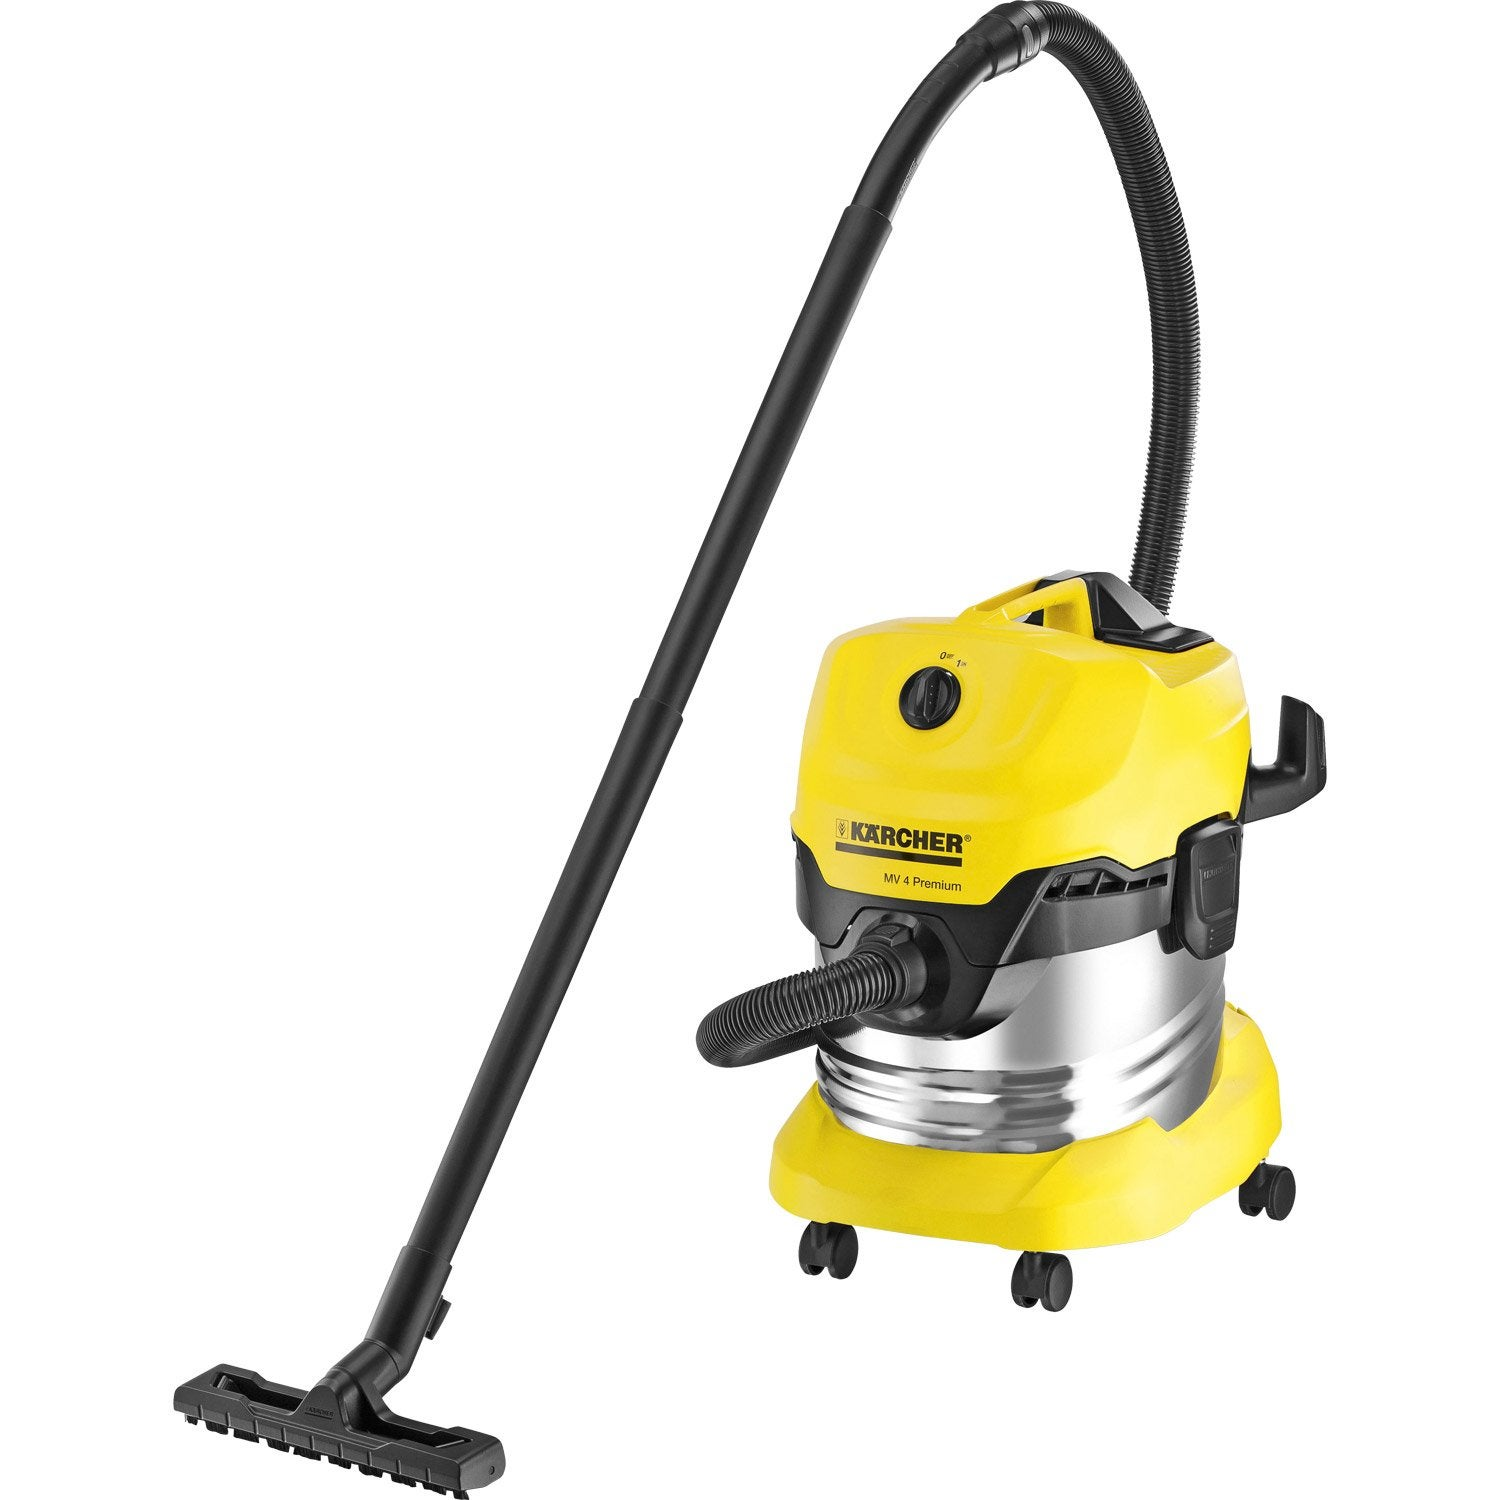 aspirateur eau poussieres et gravats wd 5300 m karcher 22 kpa. Black Bedroom Furniture Sets. Home Design Ideas